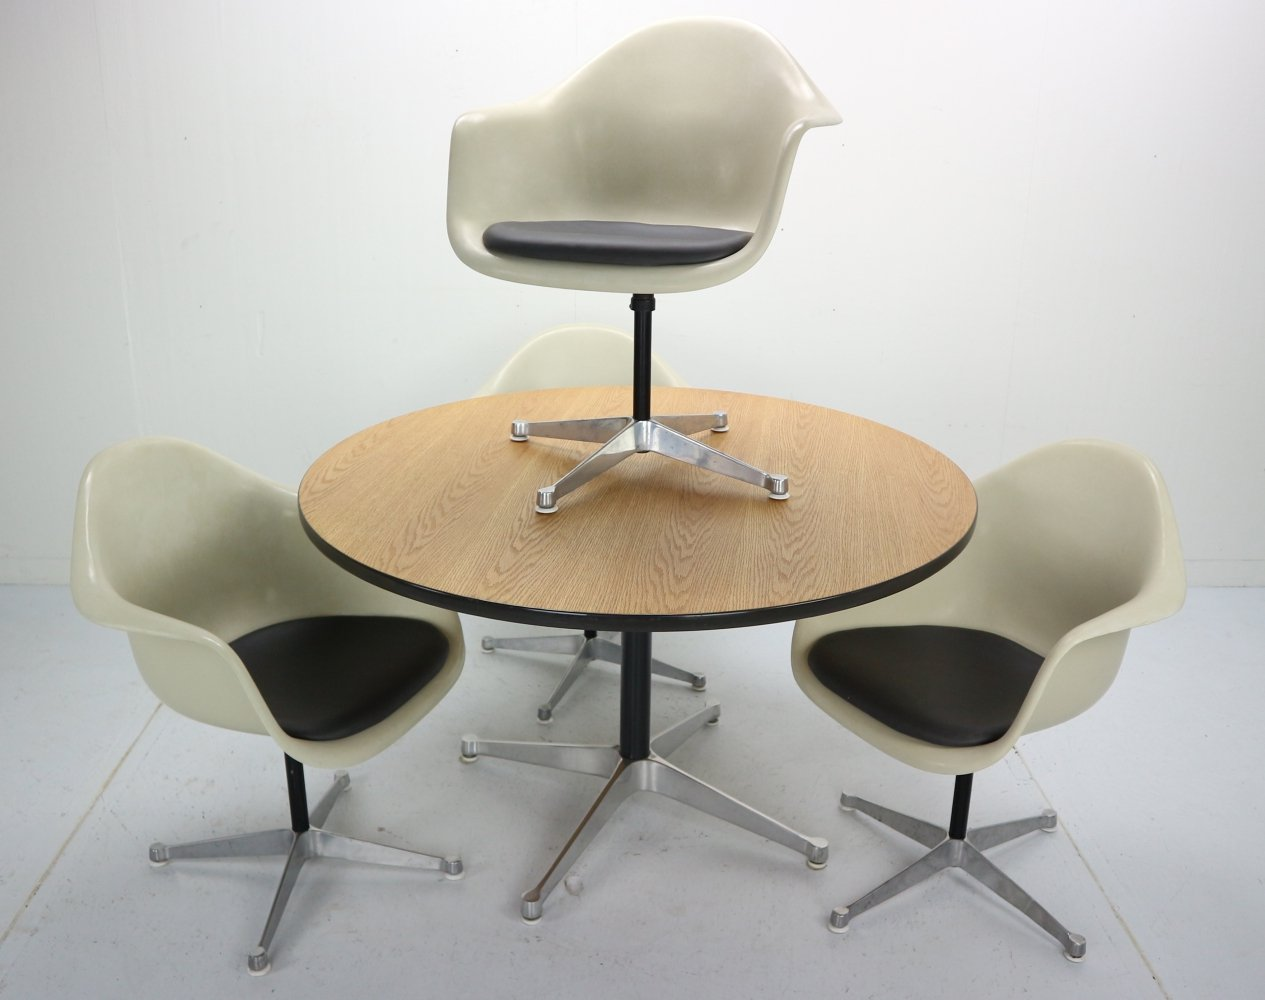 Set of 4 Bucket Swivel Chairs & Dining Table by Charles Eames for Herman Miller